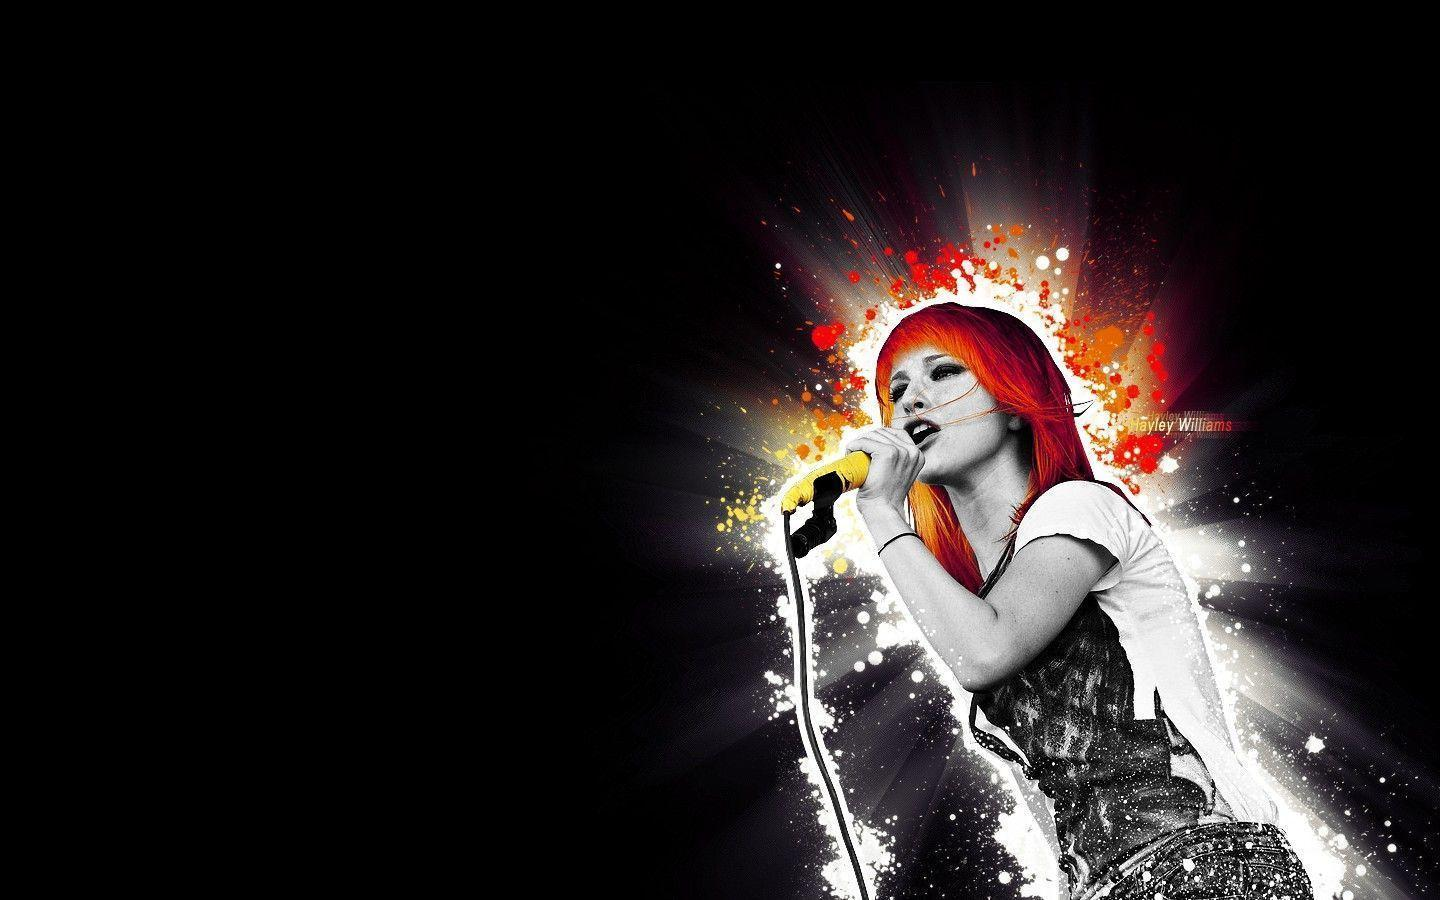 hayley williams free hd - photo #33